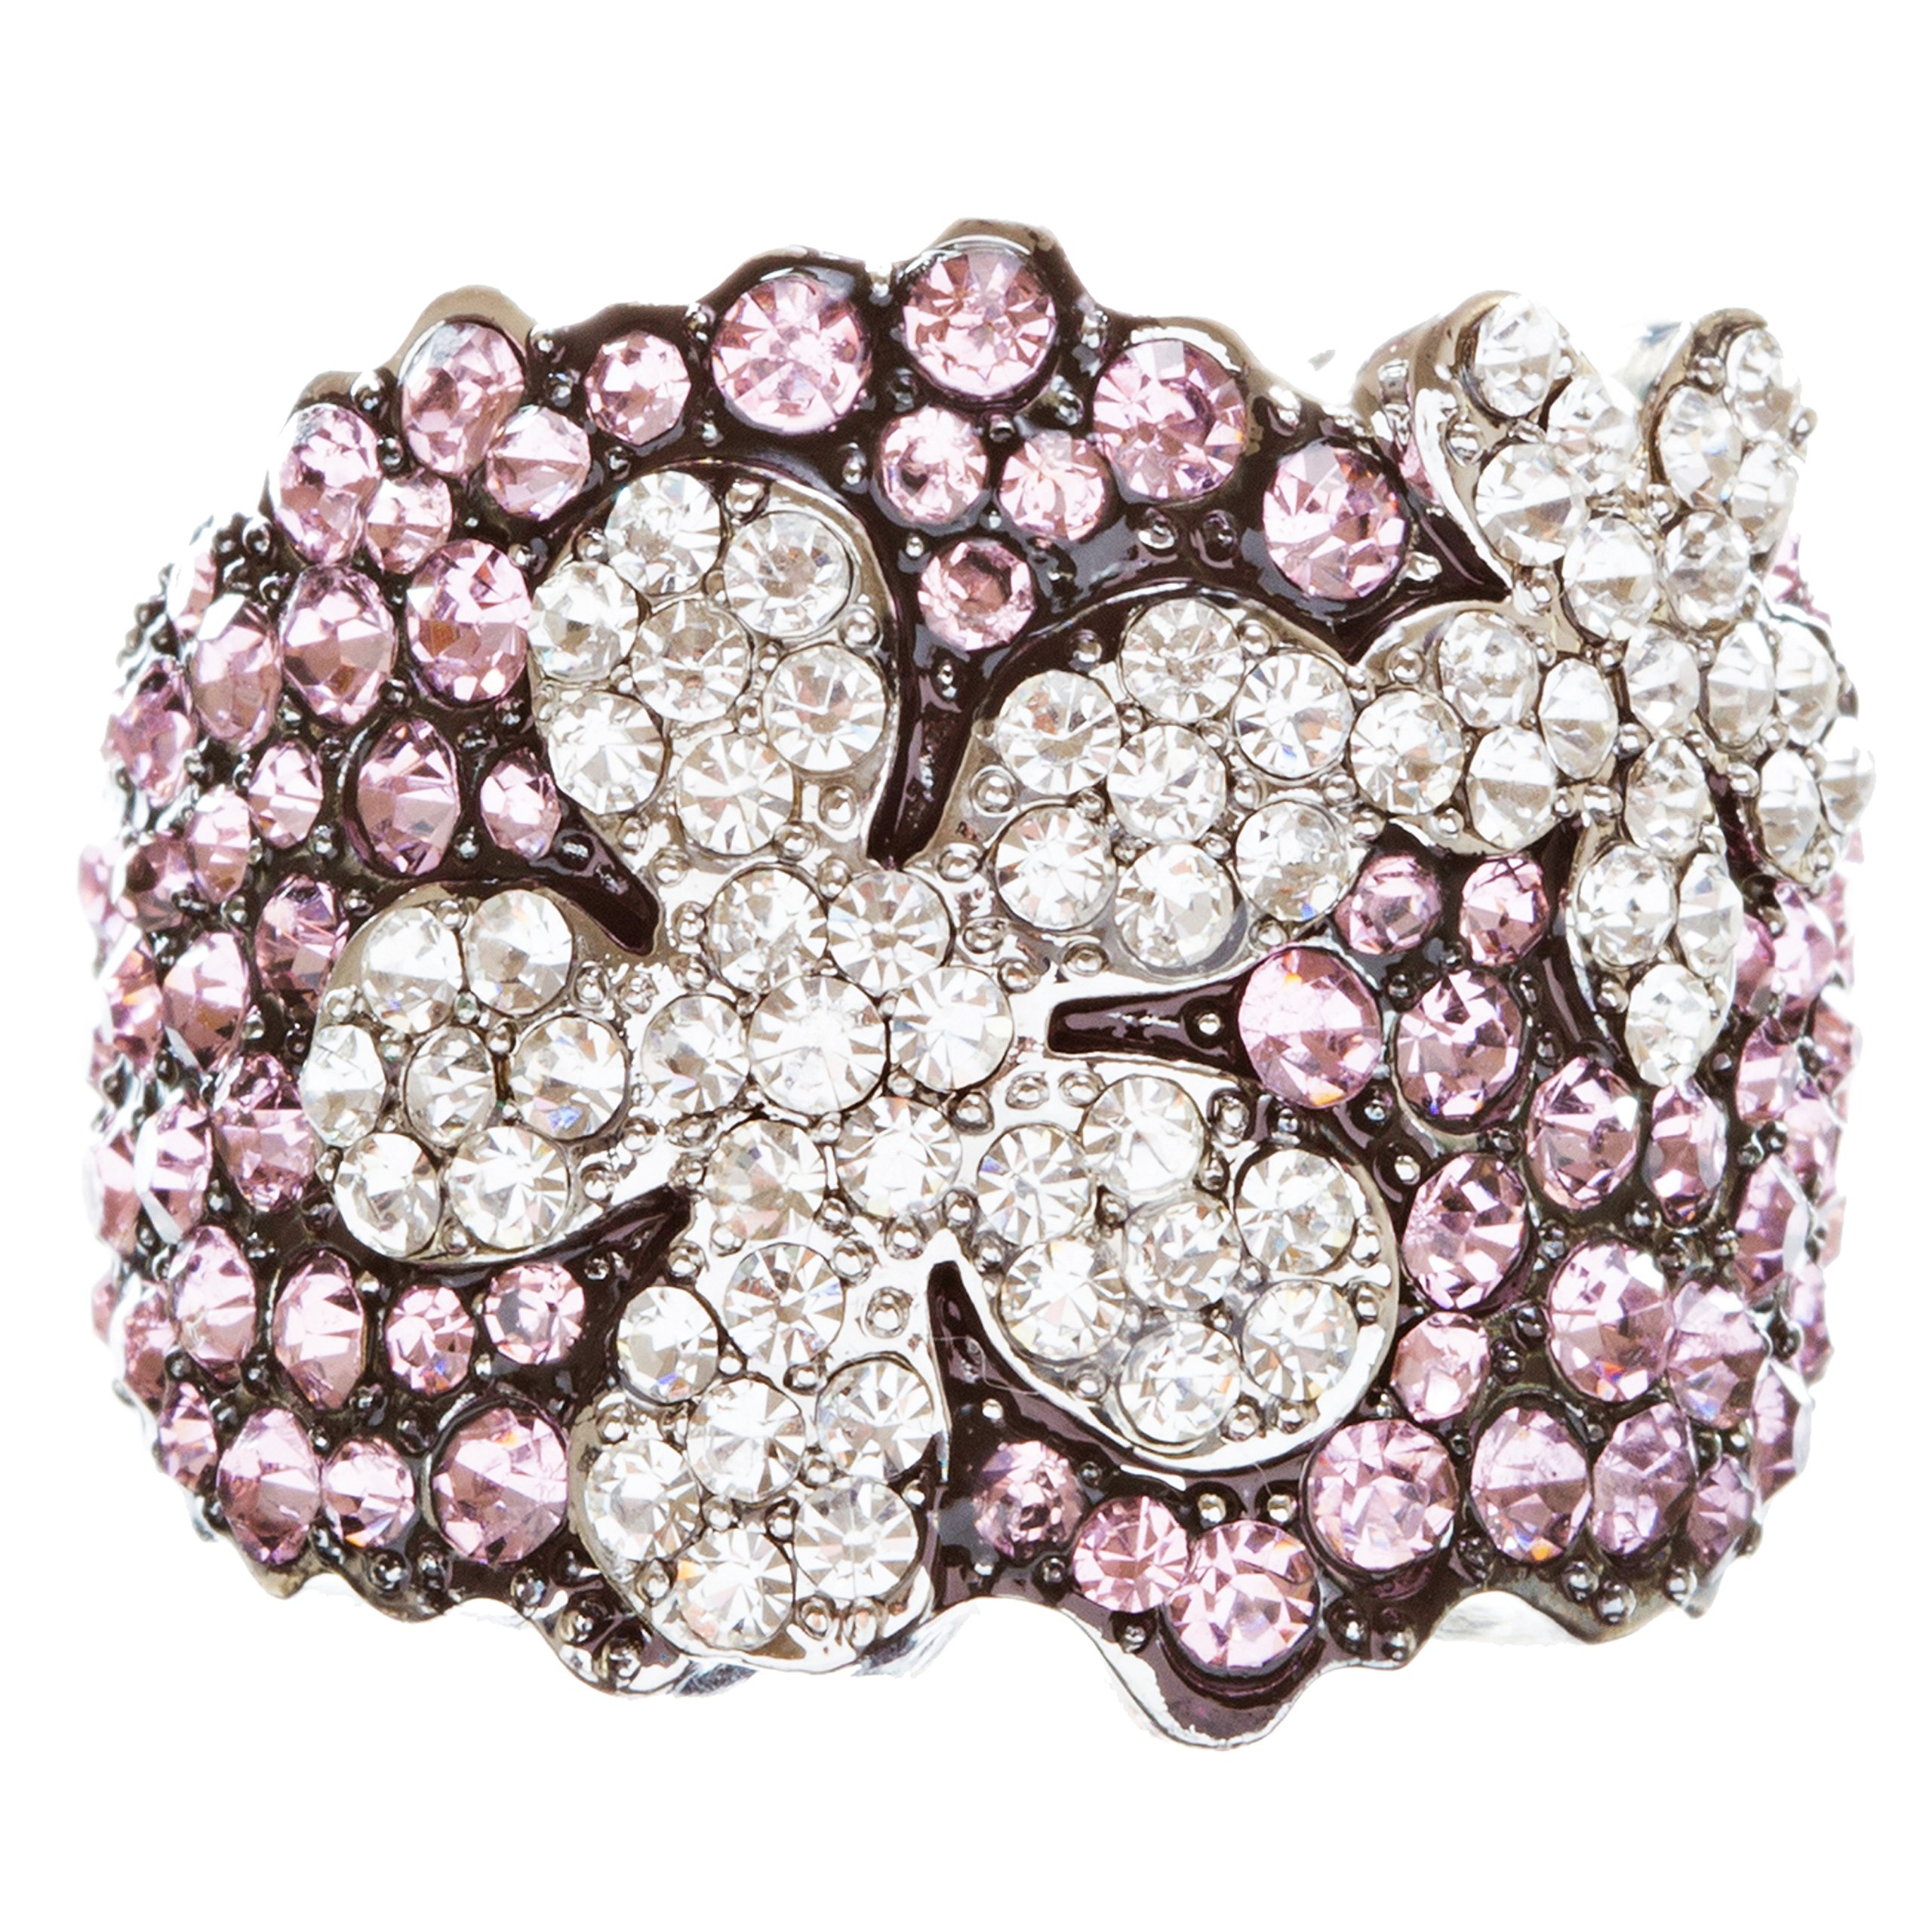 ACCESSORIESFOREVER Beautiful Flower Crystal Rhinestone Stretch Adjustable Cocktail Ring Silver R150 Pink